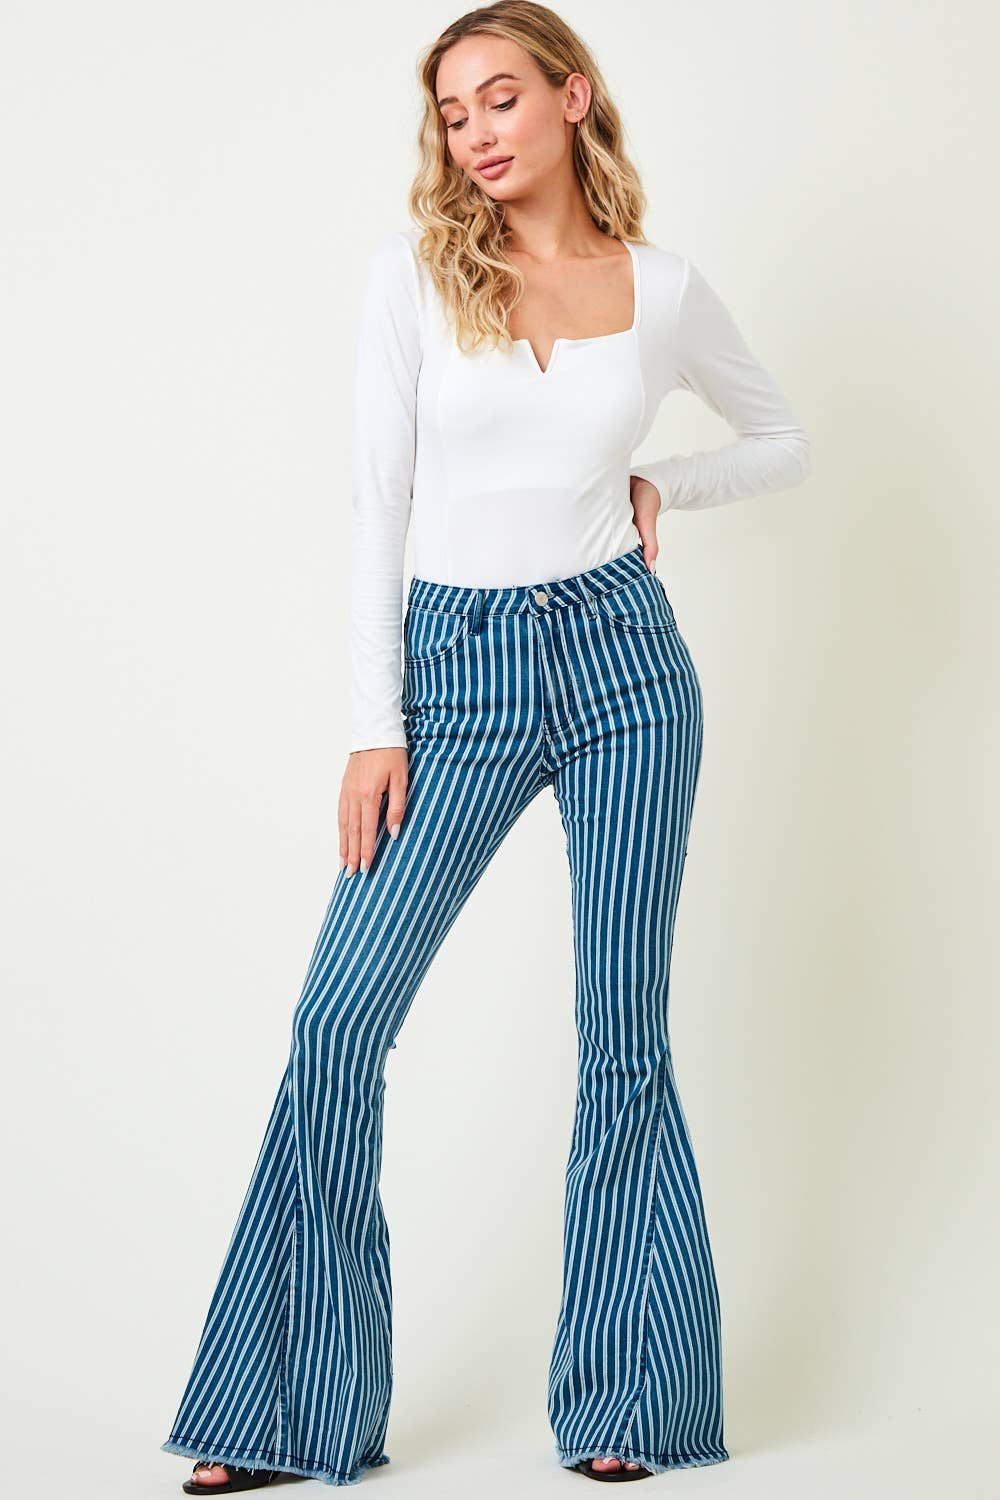 Stretchy Striped Denim Flared Bell-Branded Envy